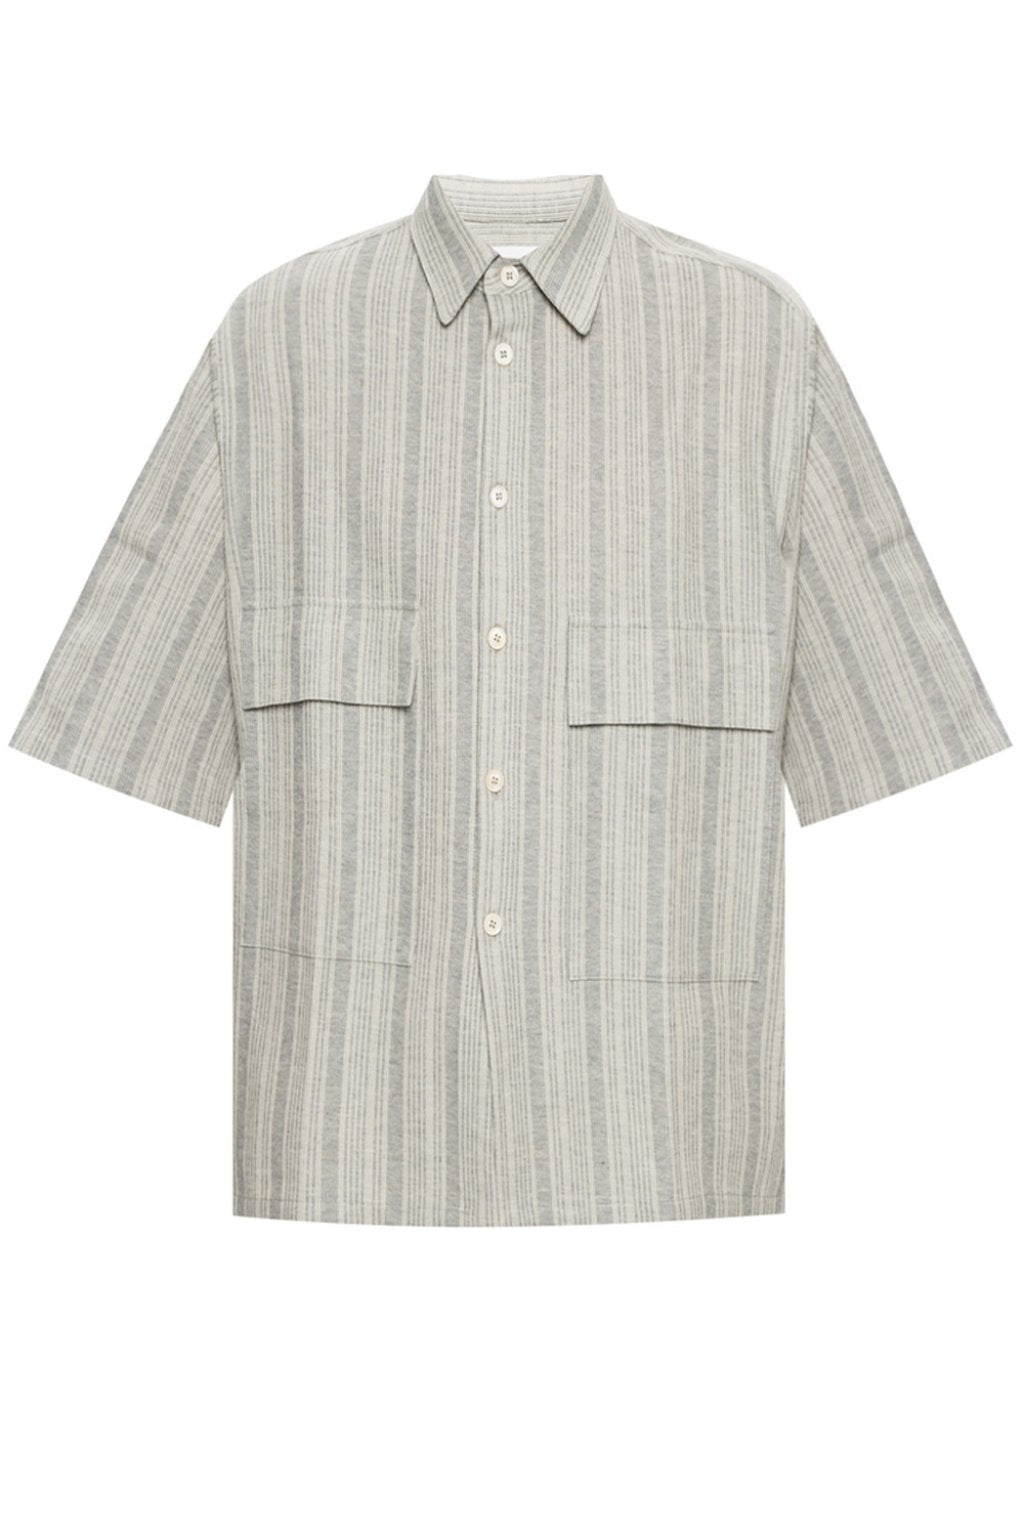 Jil Sander - Men's Shirt SS - Open Grey